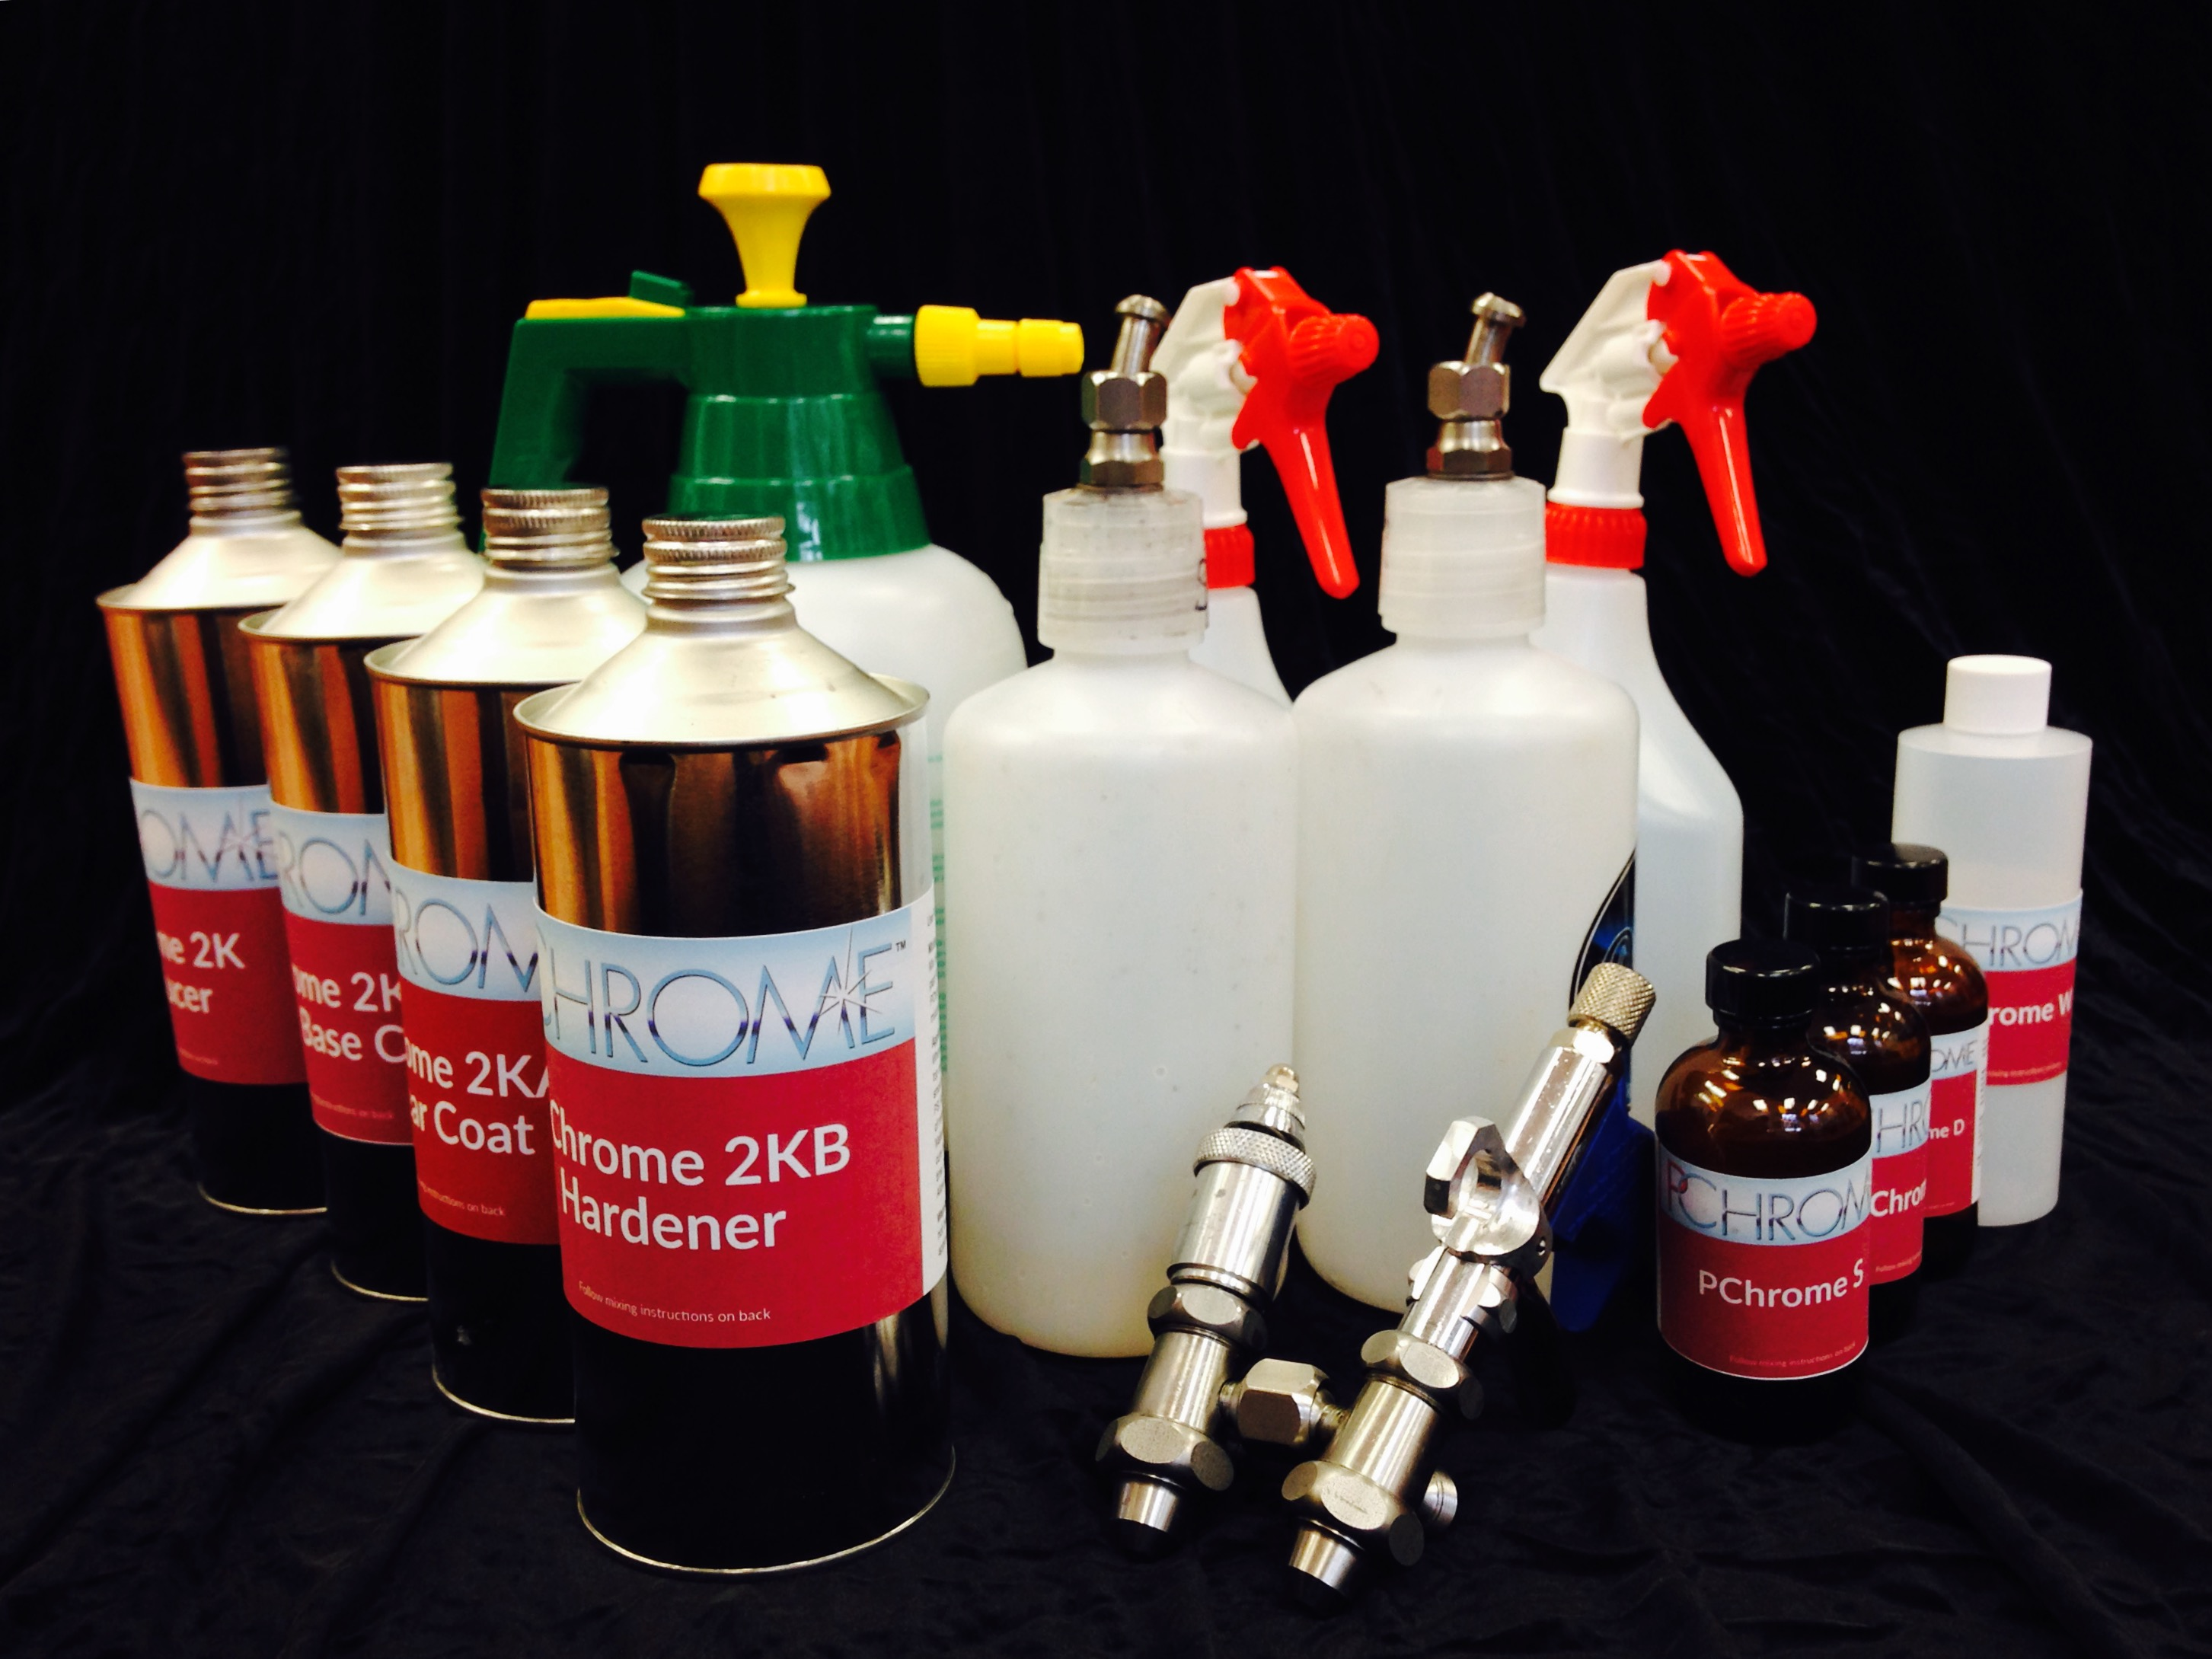 Professional Spray Chrome Kit